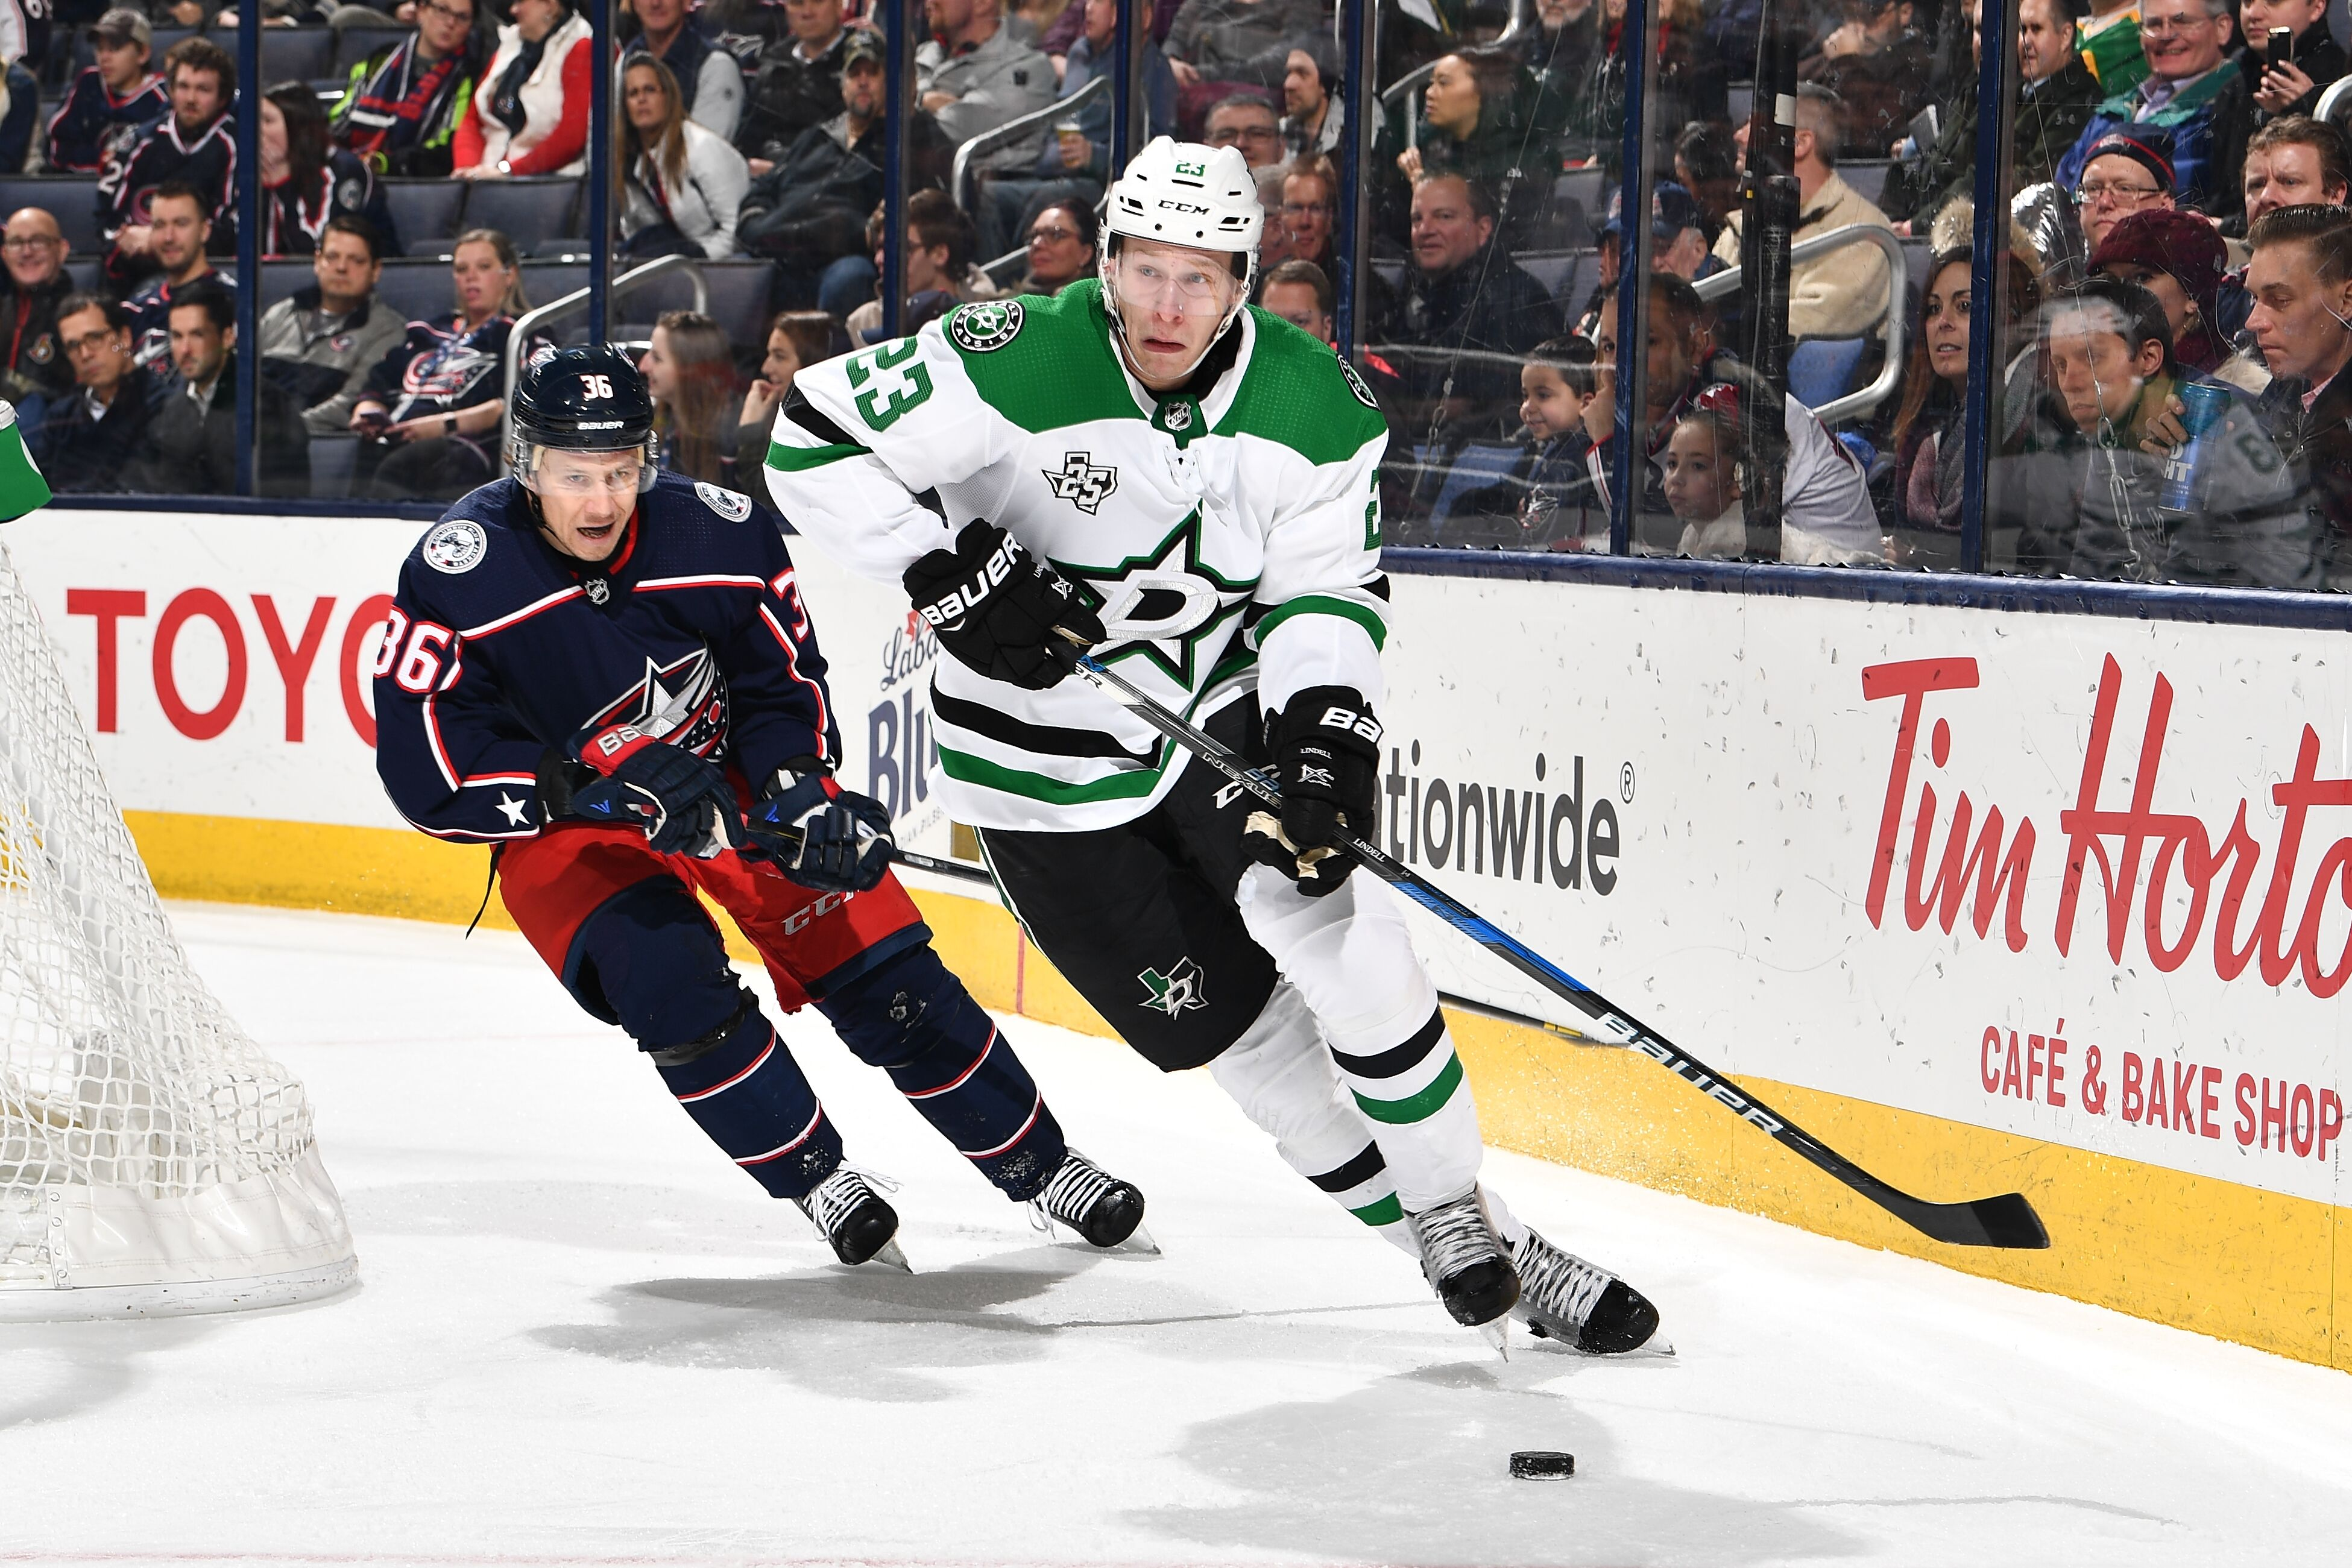 906742248-dallas-stars-v-columbus-blue-jackets.jpg